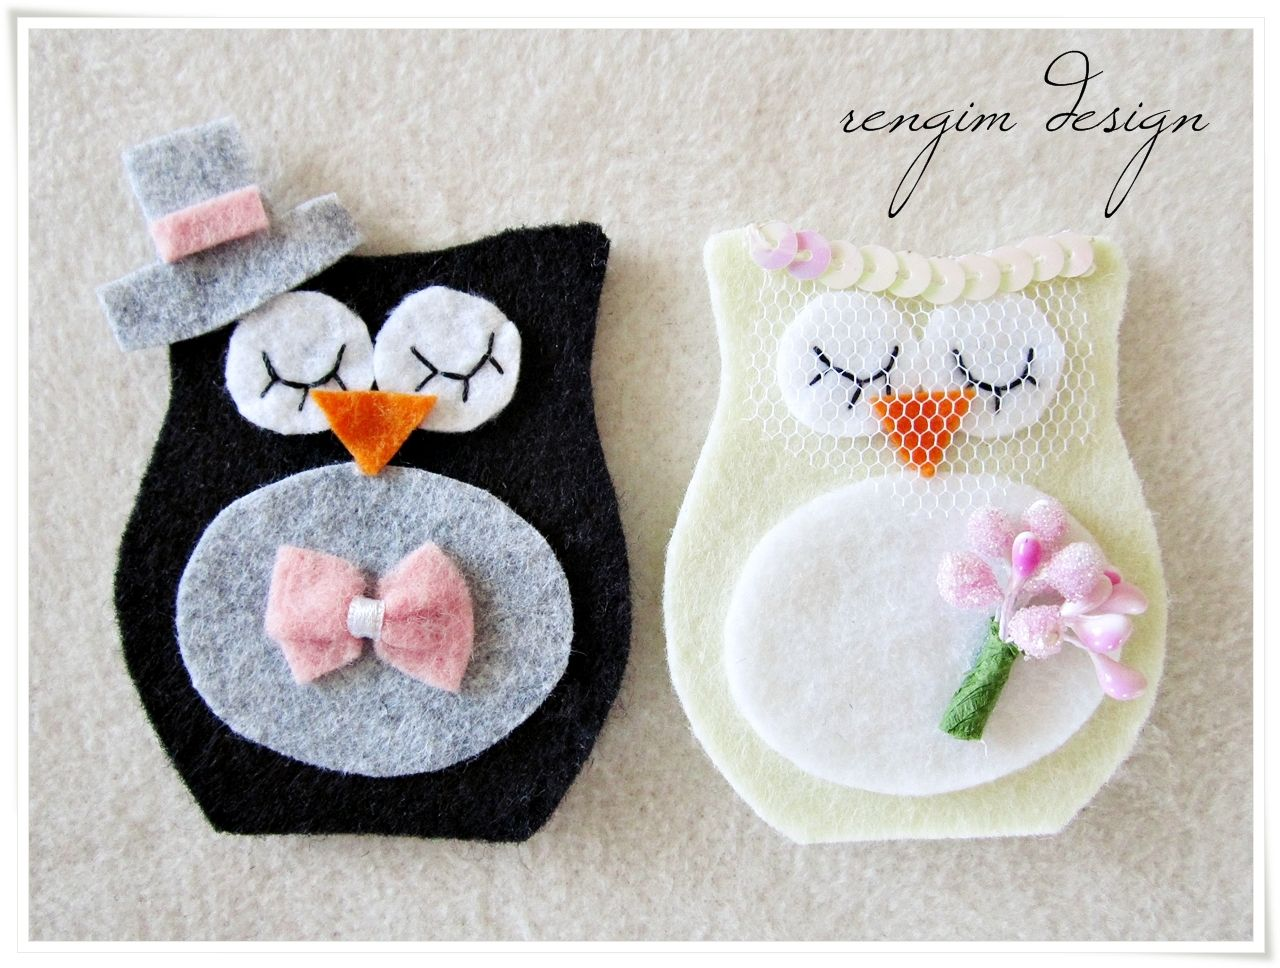 Pin by Anett Sipos on Owls   Pinterest   Felting, Bookmarks and Felt ...